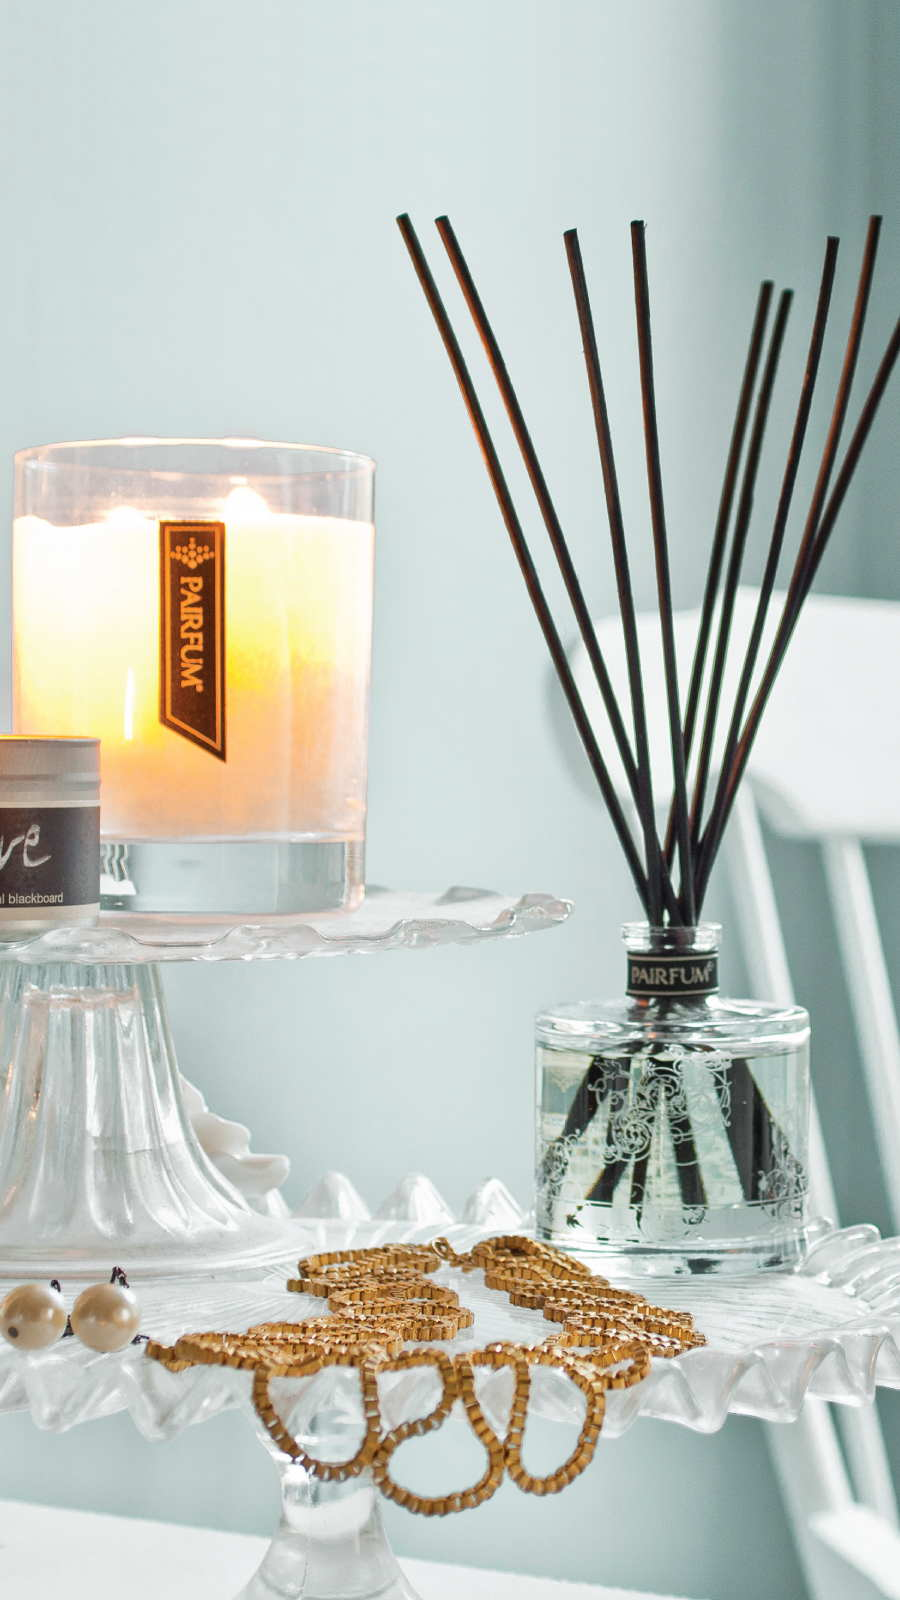 Lifestyle Living Room Natural Reed Diffuser Fragrance Candle 9 16